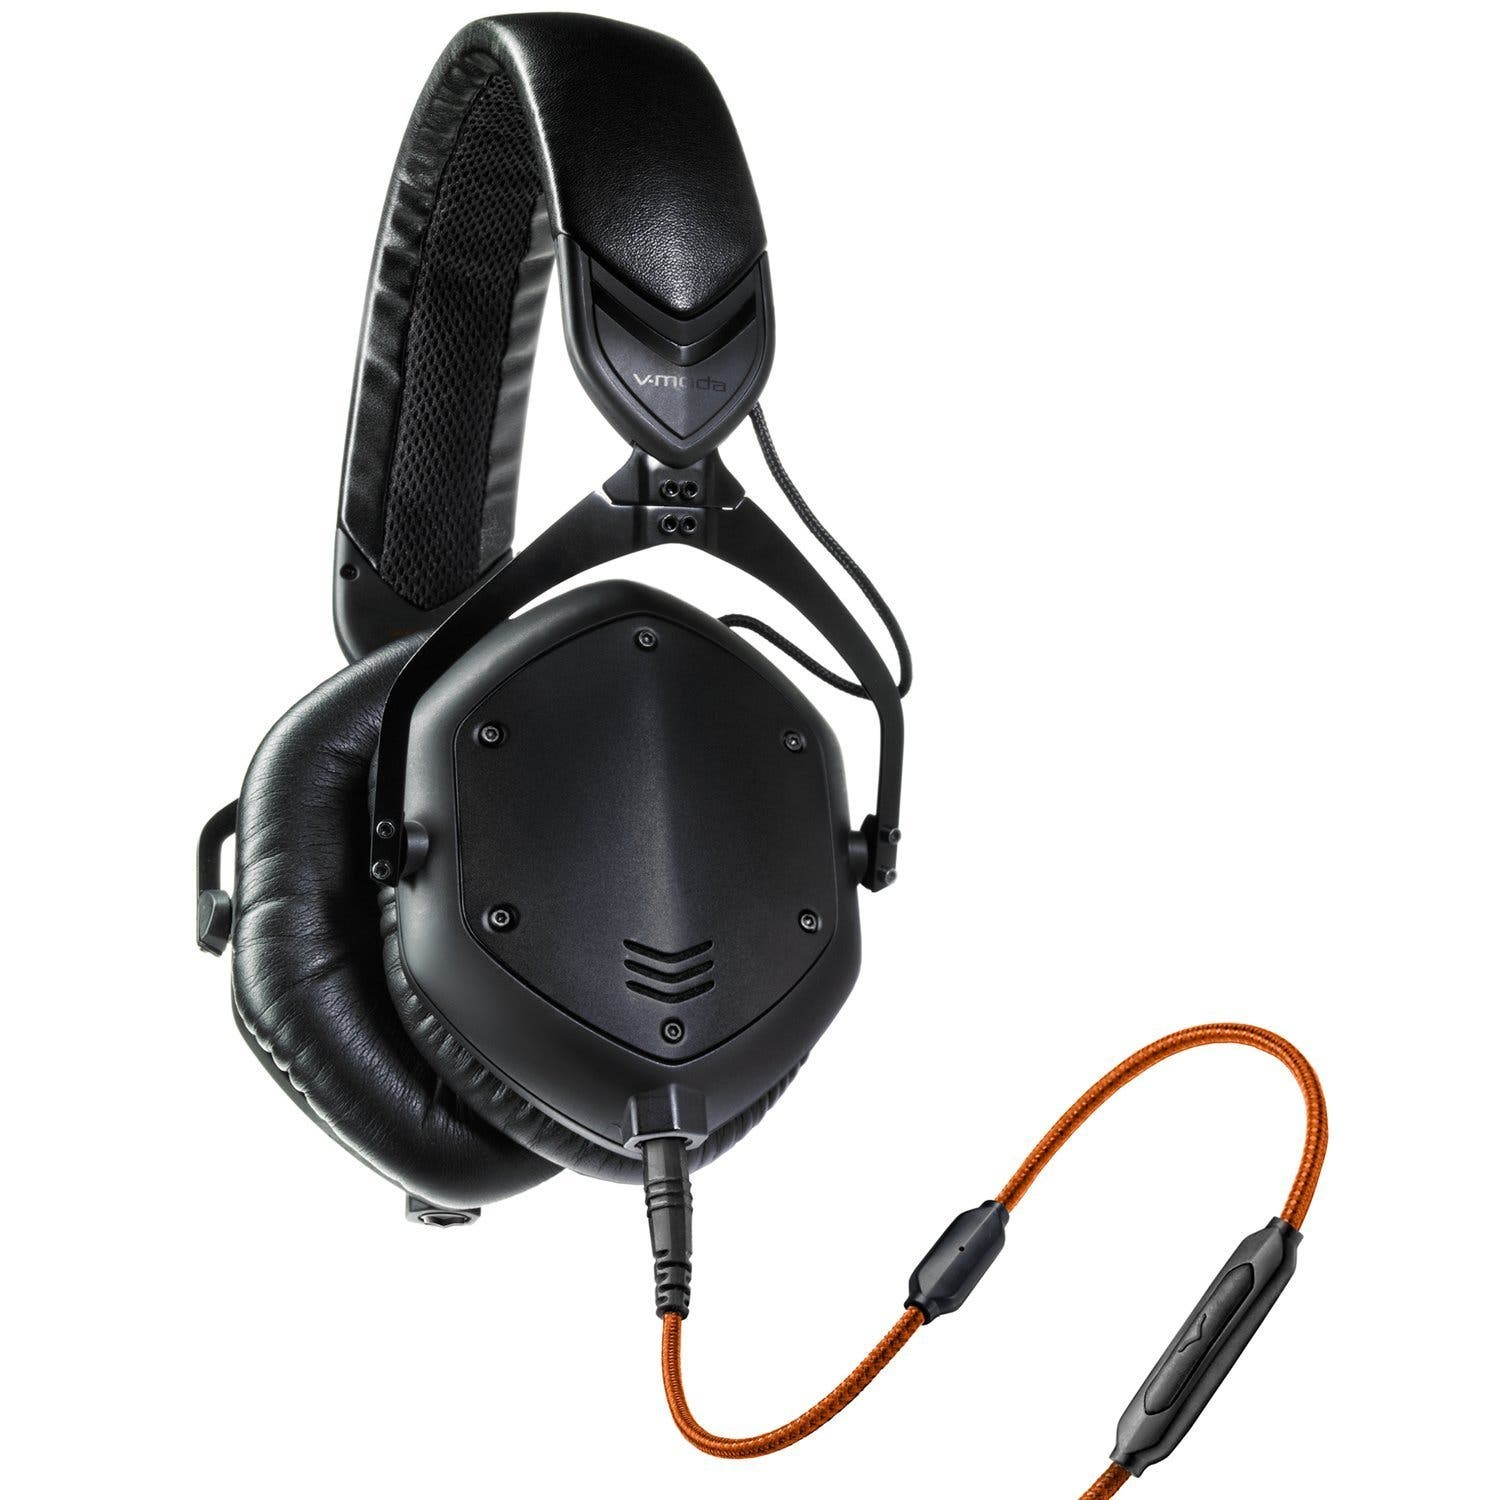 VMODA_CrossfadeM-100-review (2)